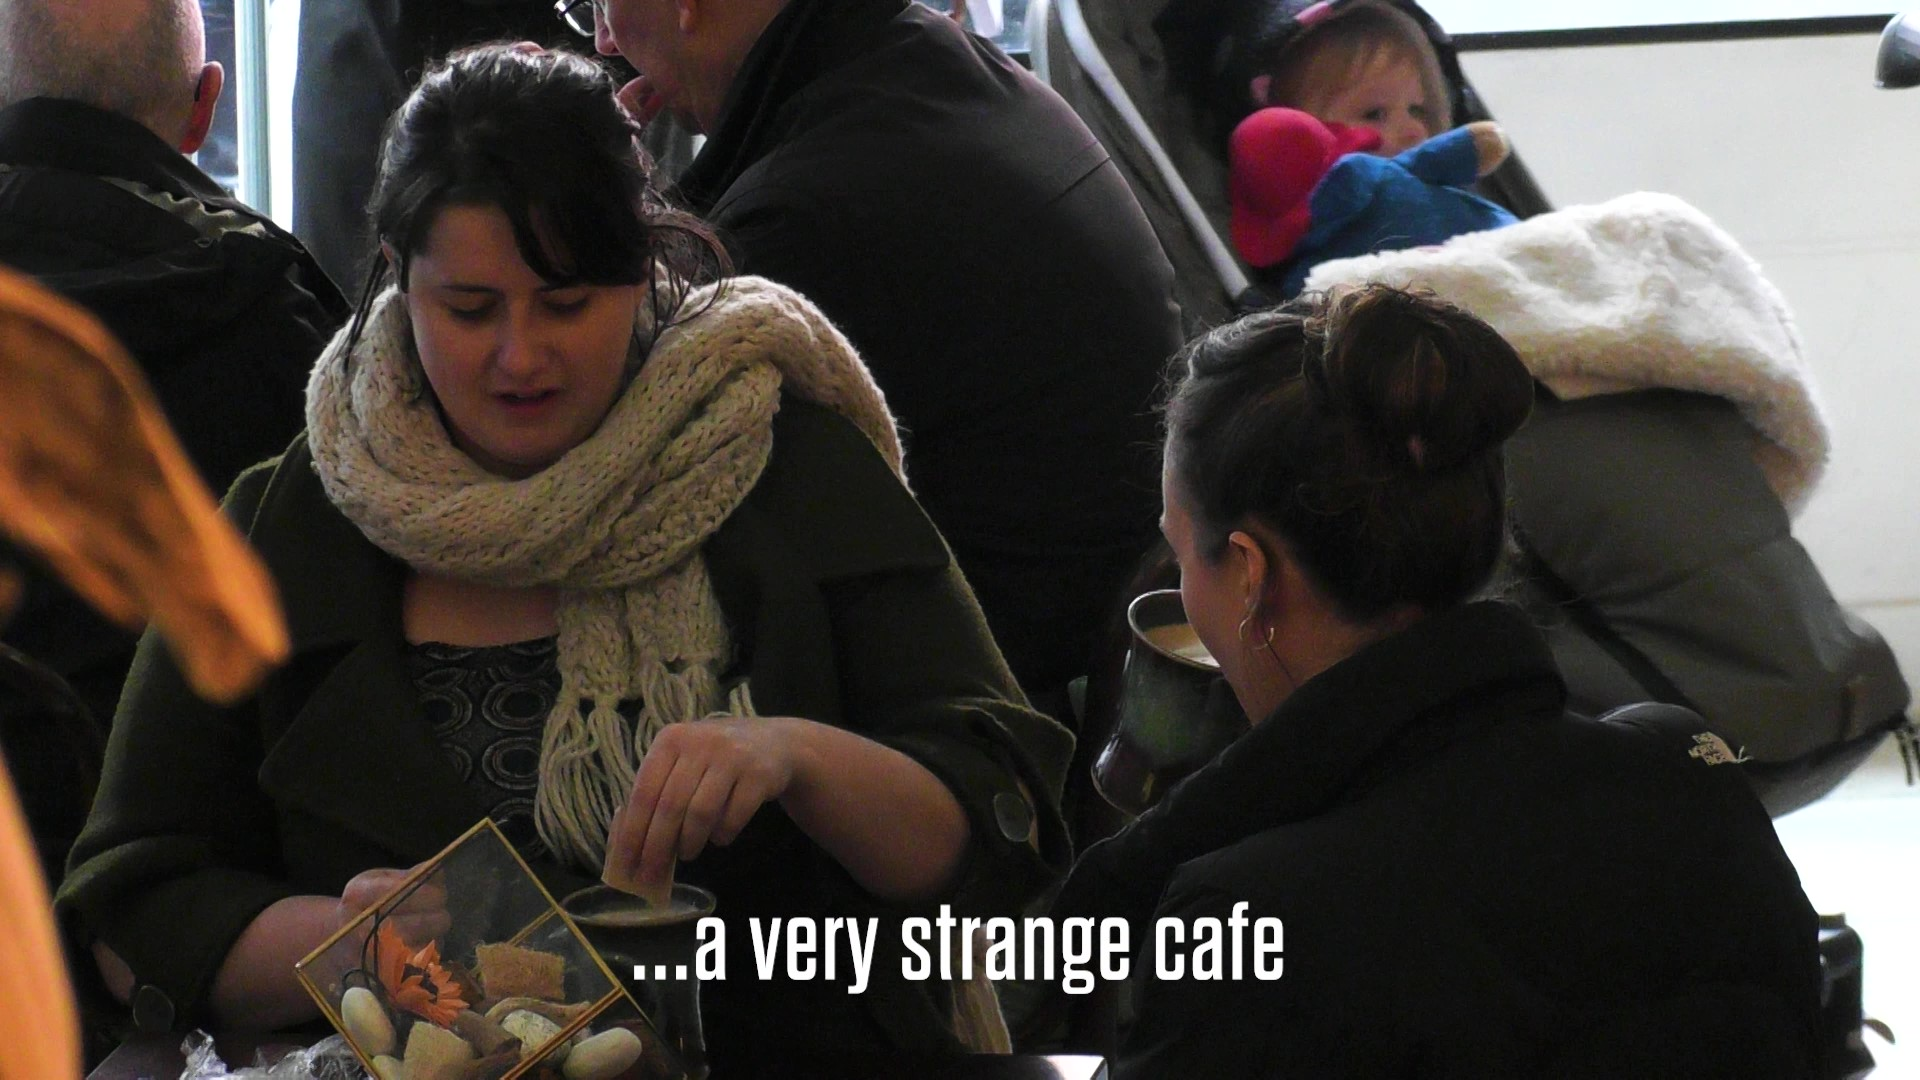 MSUnderstood café advertising Multiple Sclerosis with woman saying this is a very strange cafe